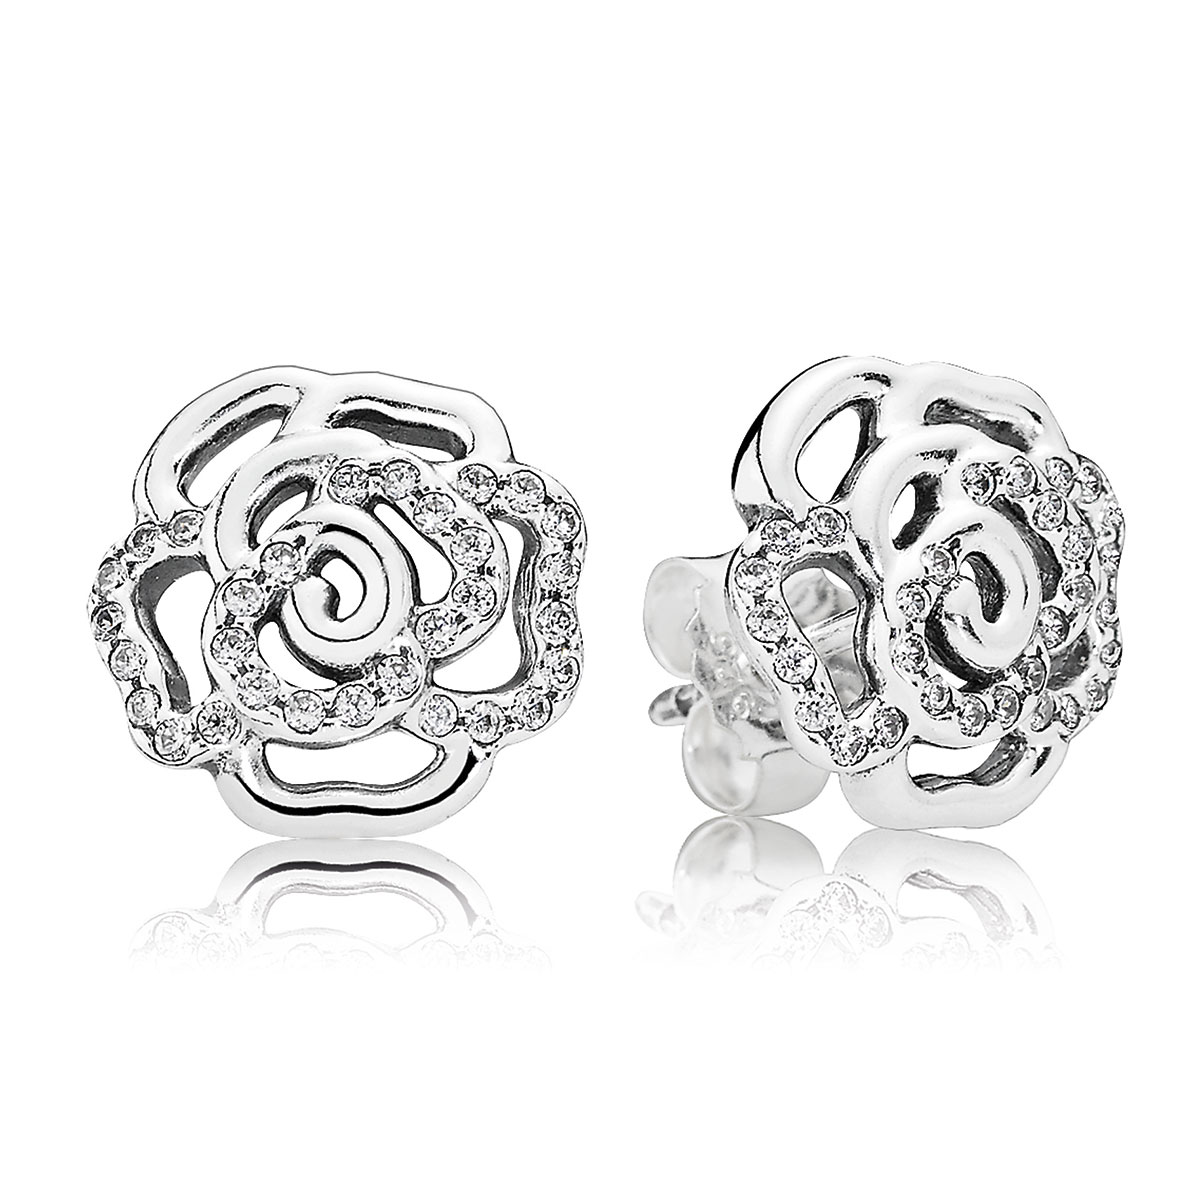 804-391-PANDORA Shimmering Rose with Clear CZ Stud Earrings